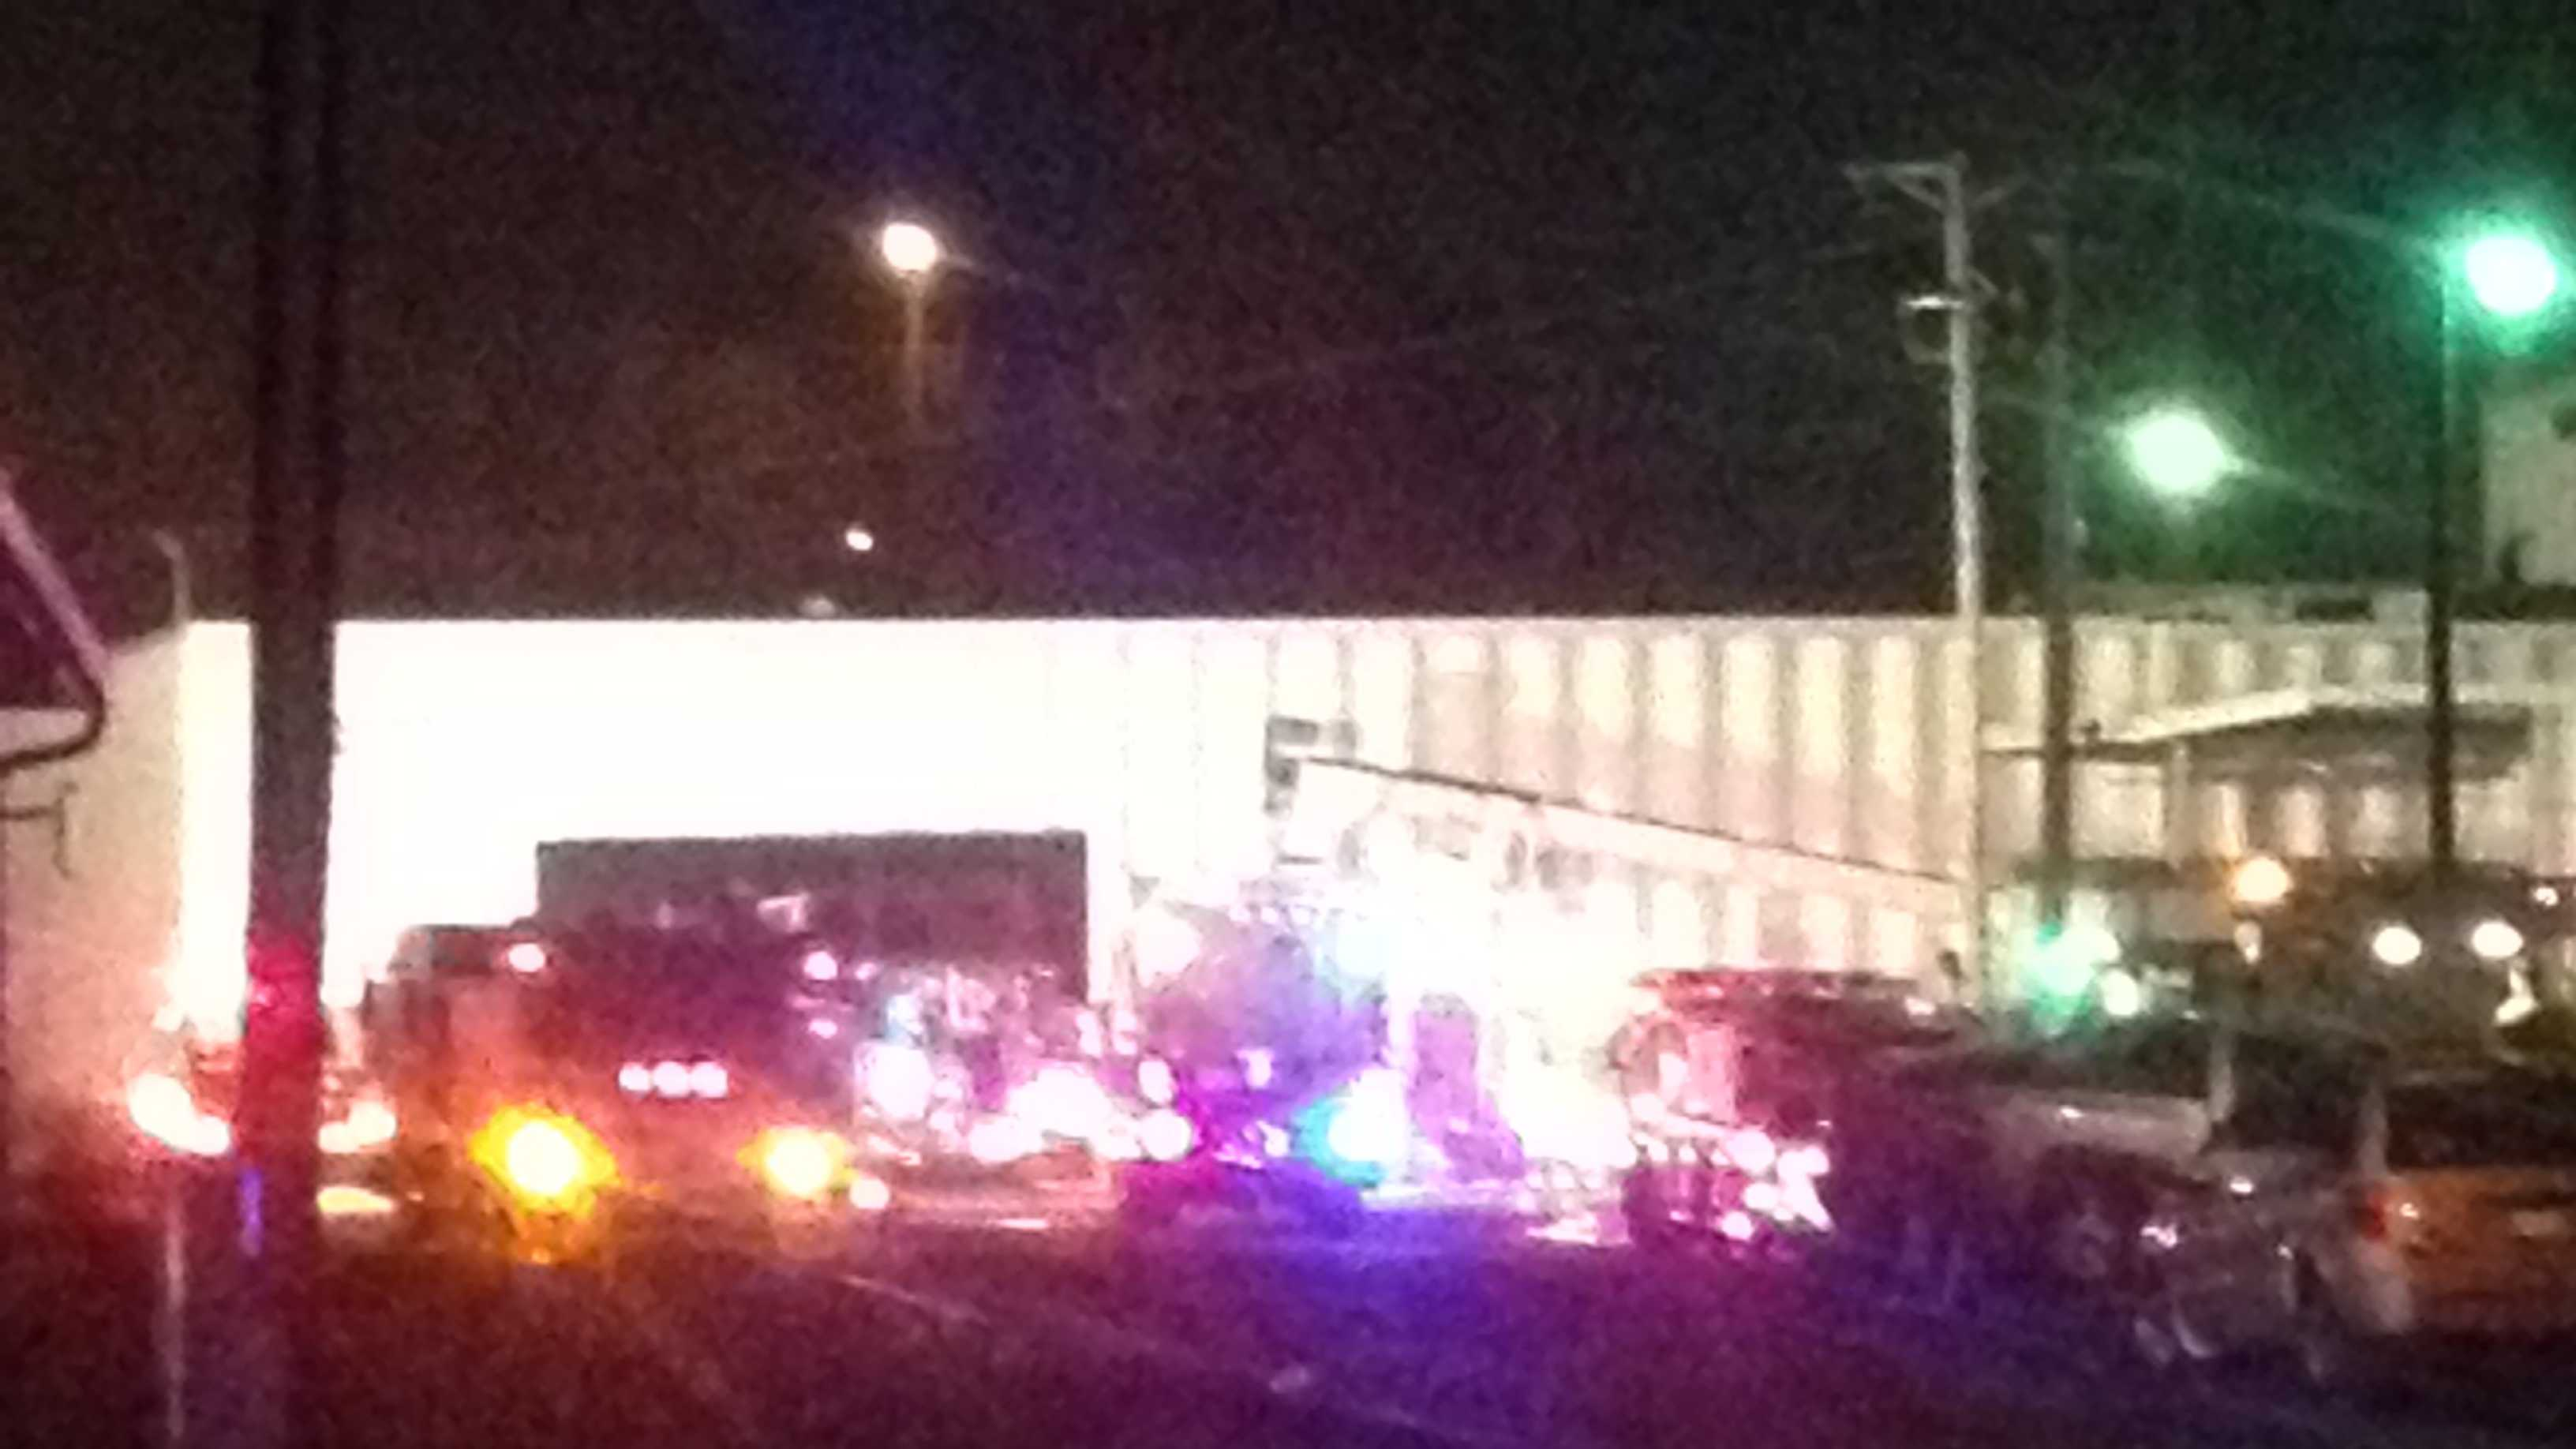 A fire broke out at the Dar Pro rendering facility Friday night.